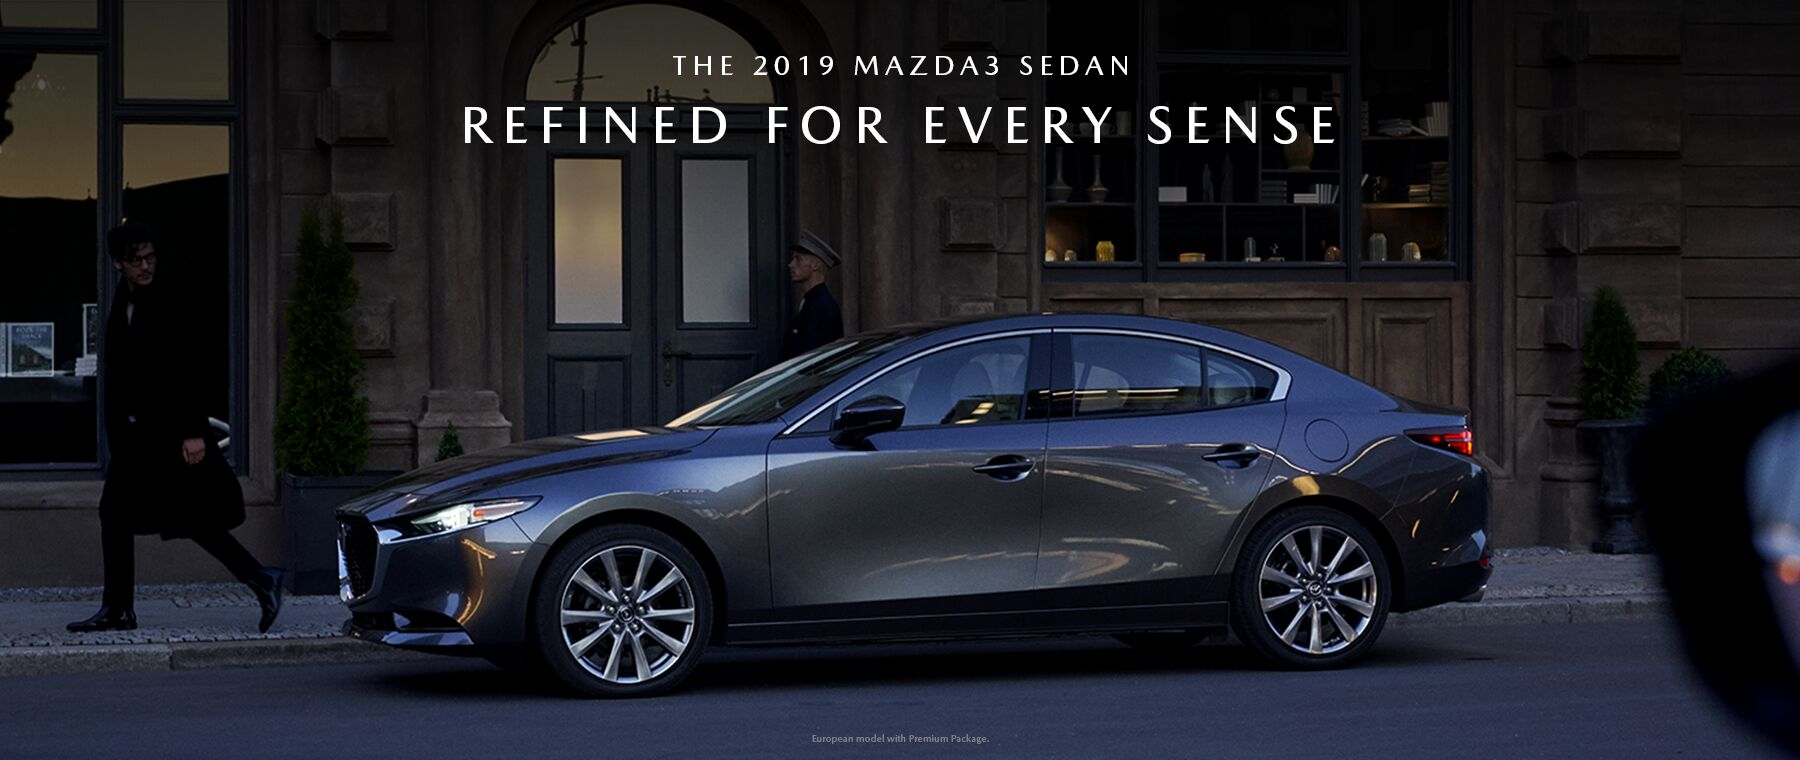 Mazda Dealership City of Industry CA Used Cars Puente